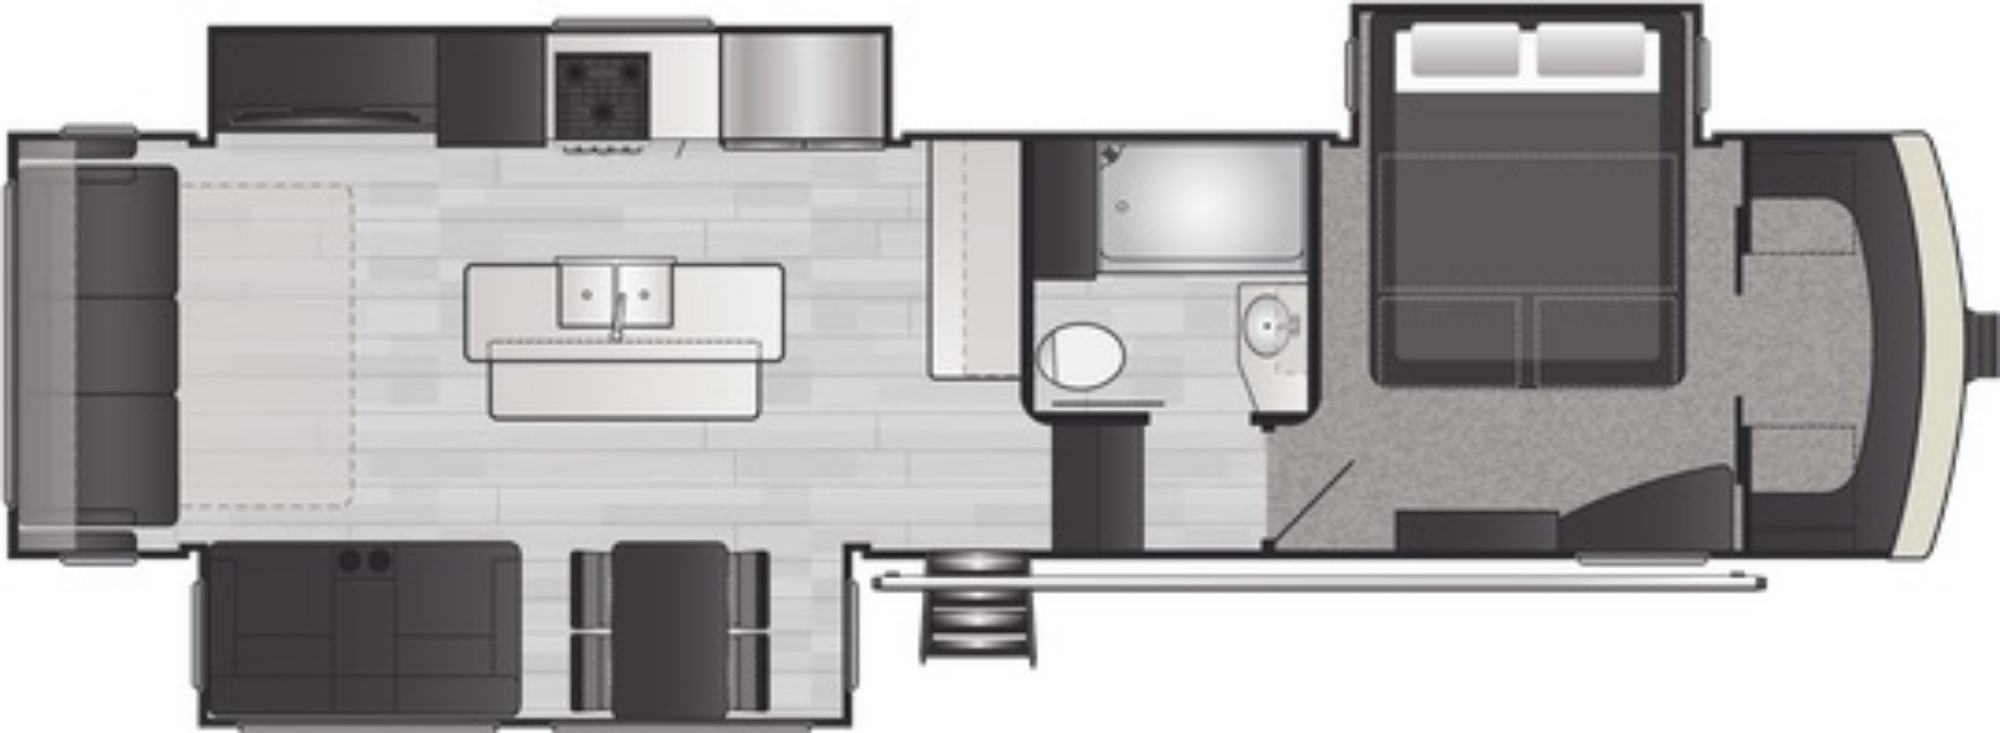 View Floor Plan for 2021 KEYSTONE ARCADIA 3660RL